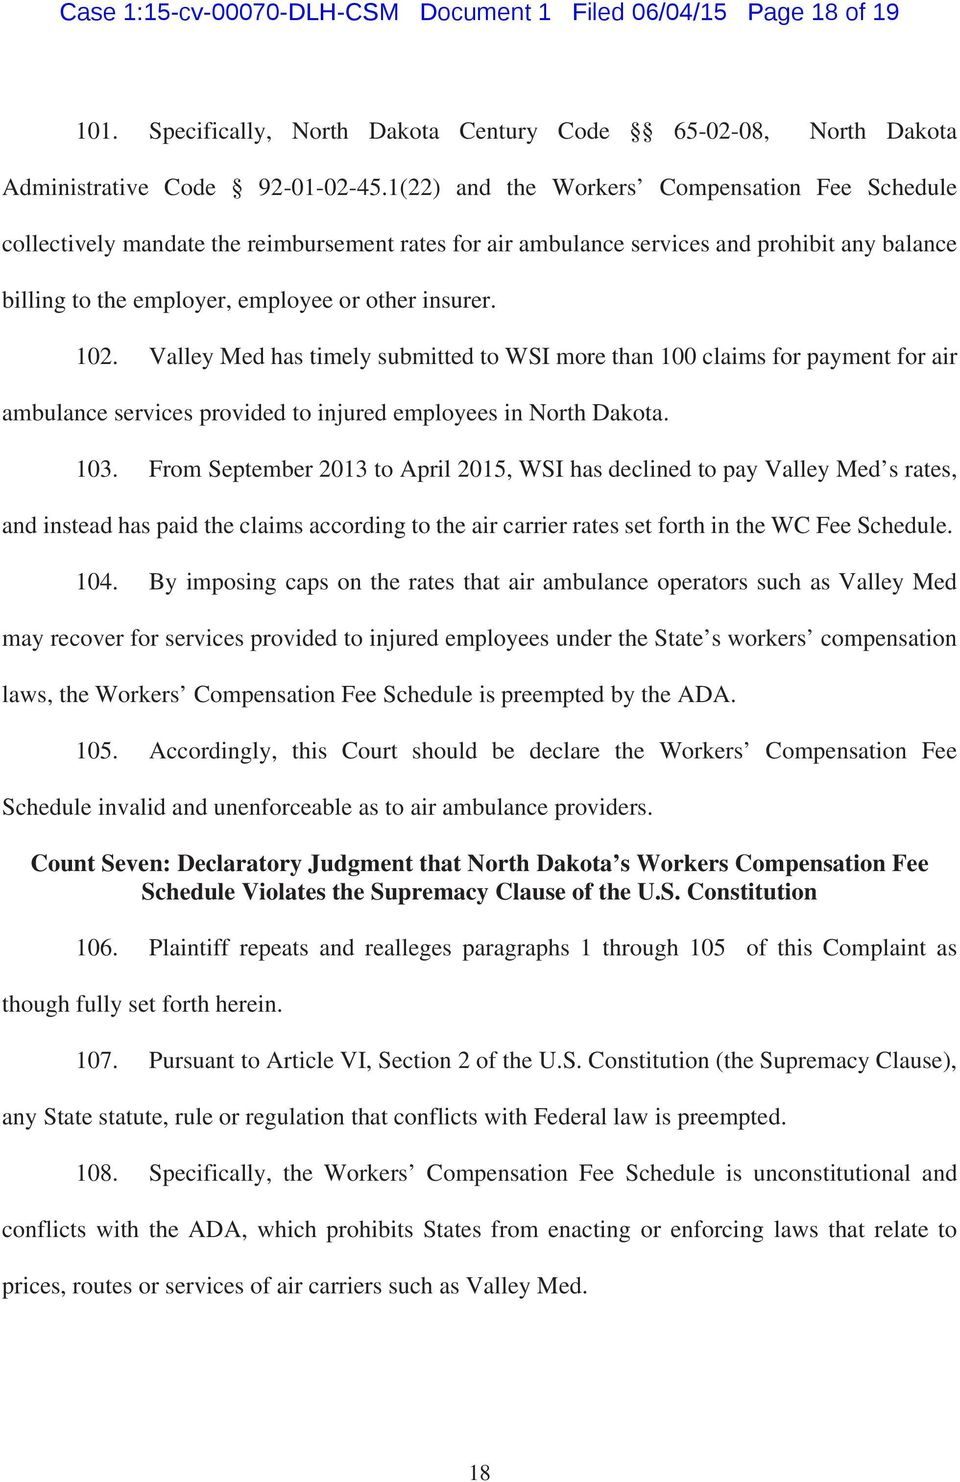 Case 1 15 Cv Dlh Csm Document 1 Filed 06 04 15 Page 1 Of